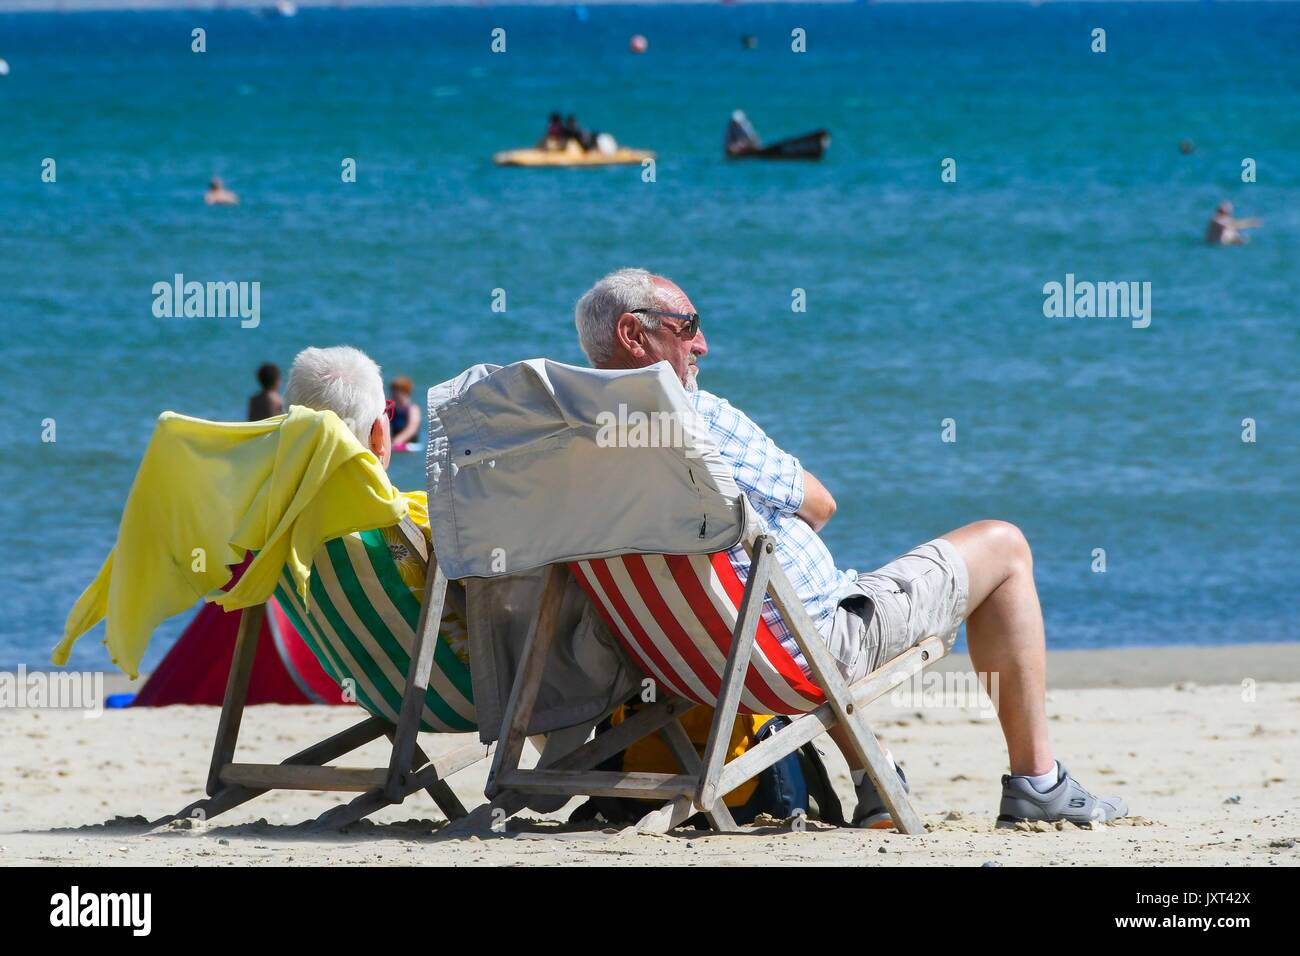 Weymouth, Dorset, UK. 17th Aug, 2017. UK Weather. Sunbathers on the beach enjoying the warm sunny weather at the Stock Photo